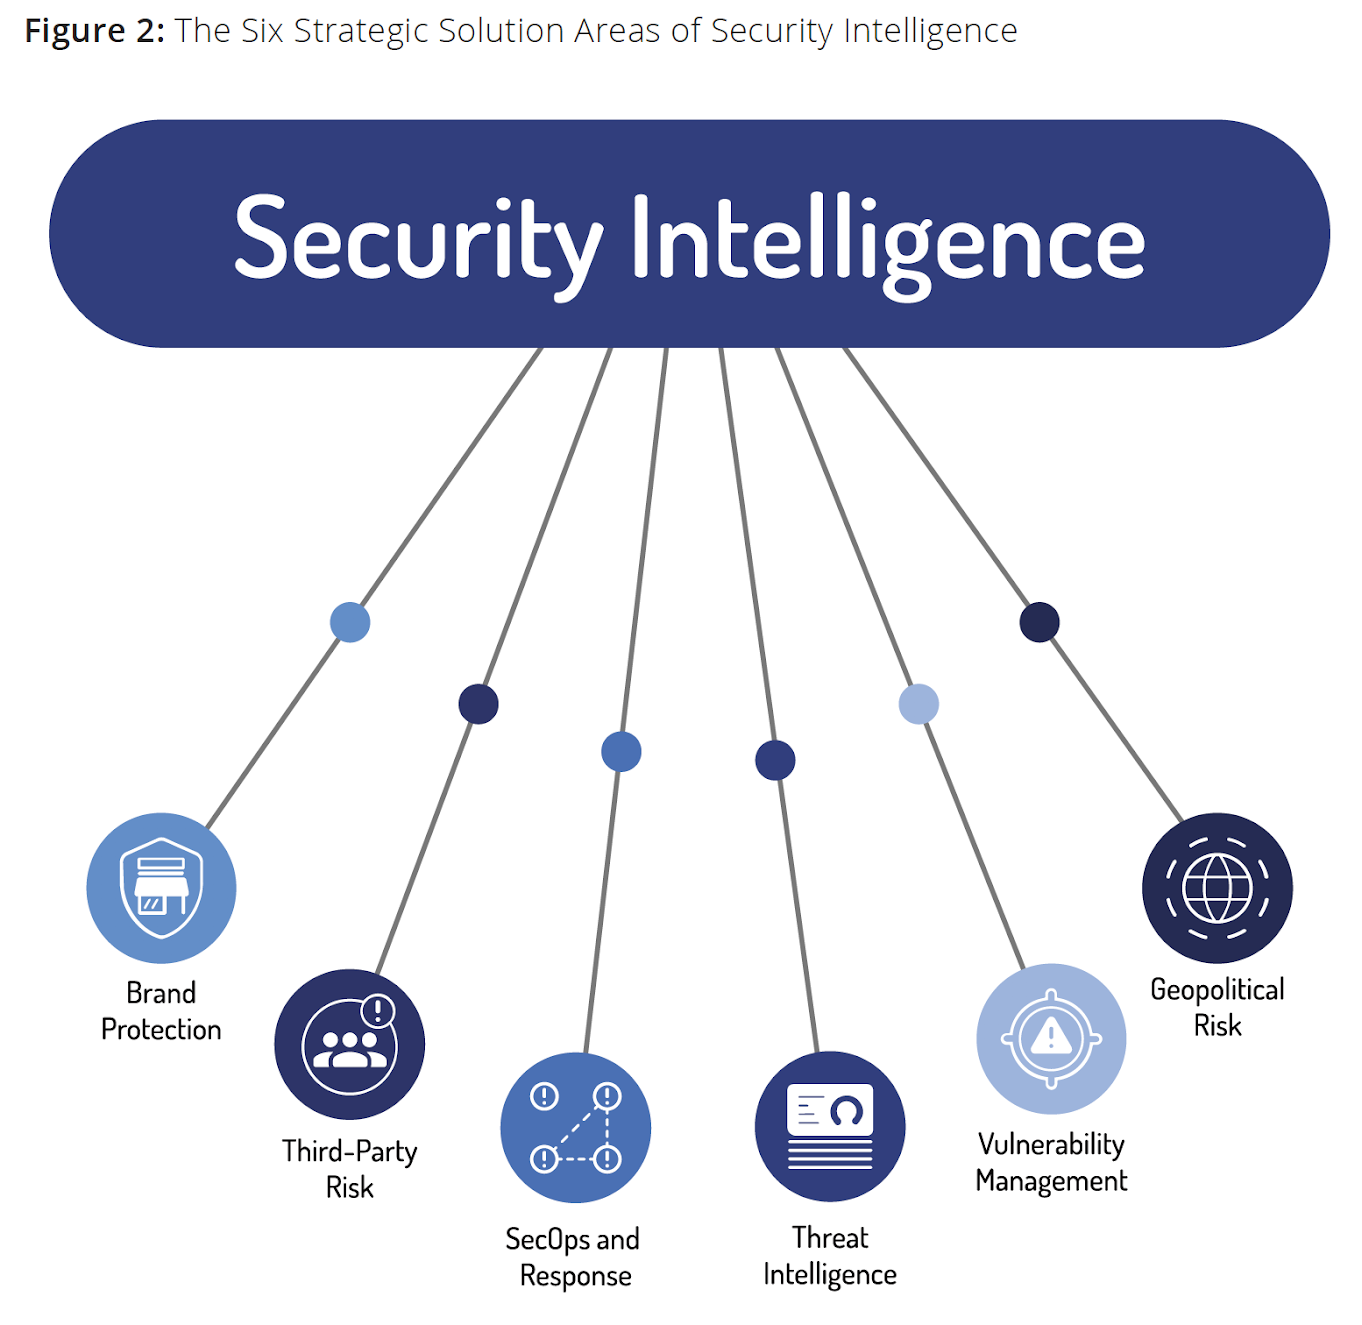 Figure 2: The Six Strategic Solution Areas of Security Intelligence